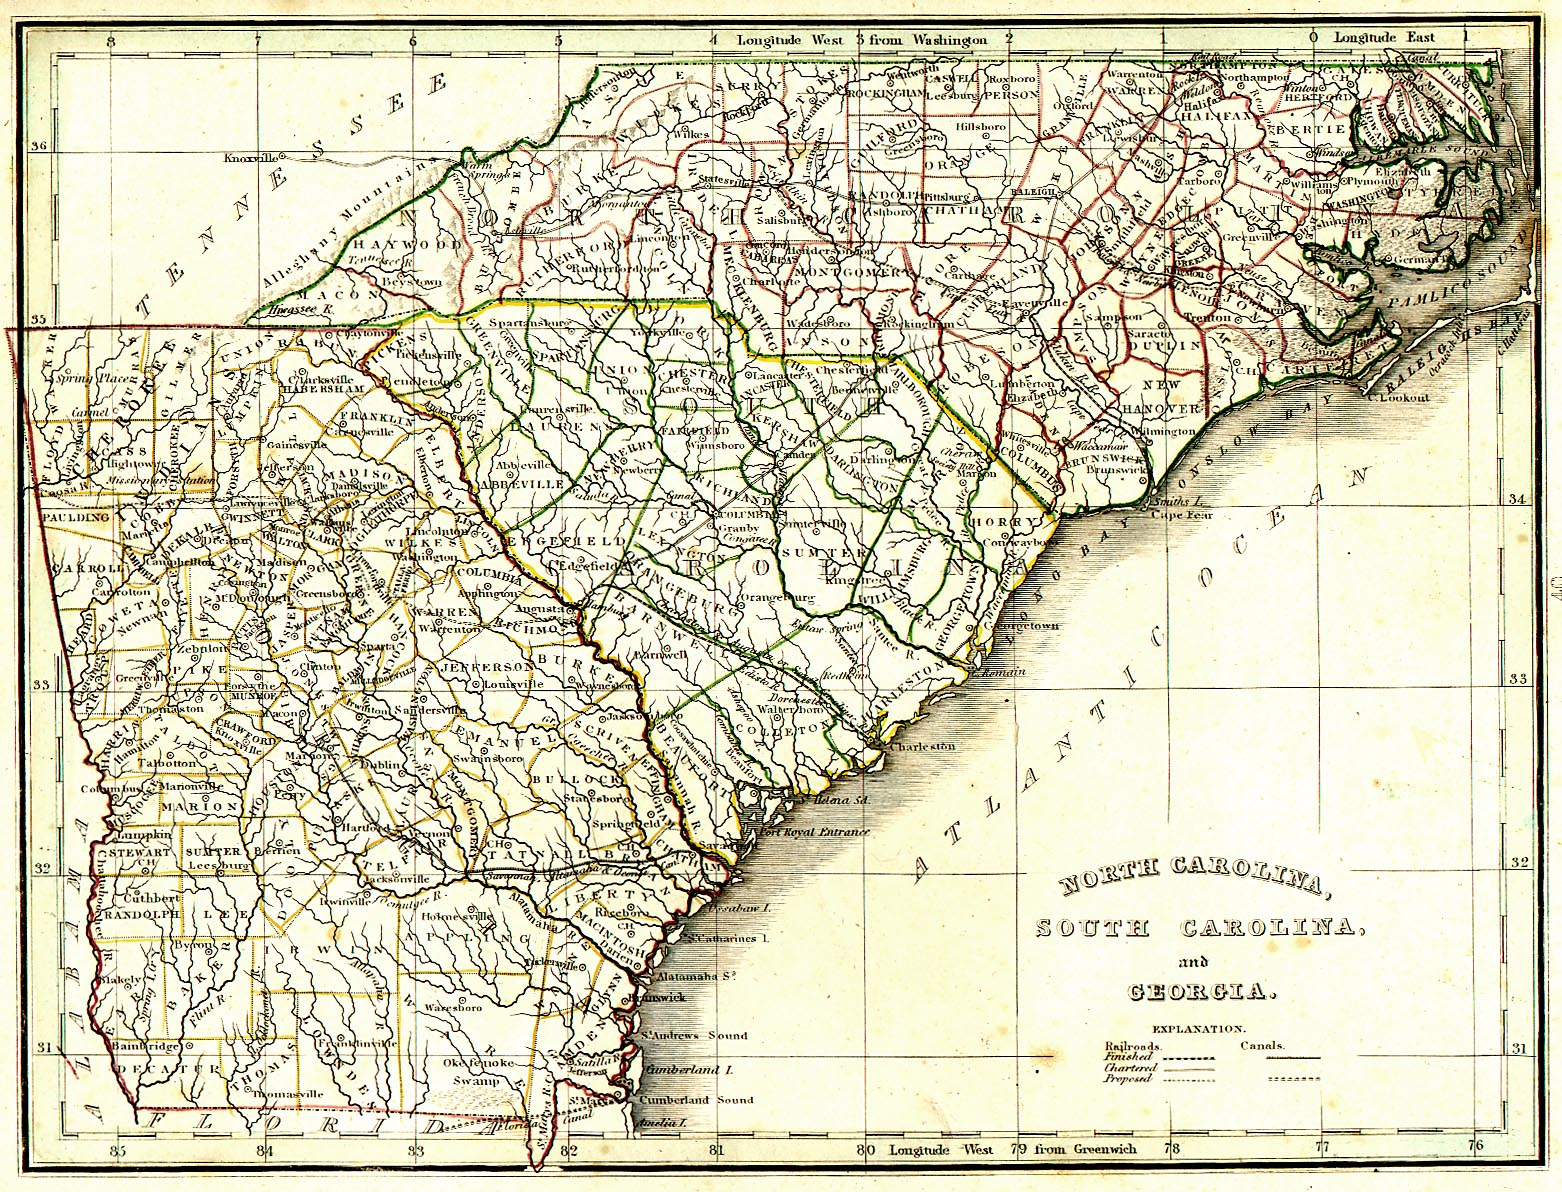 1820 Map of North Carolina South Carolina and Georgia American